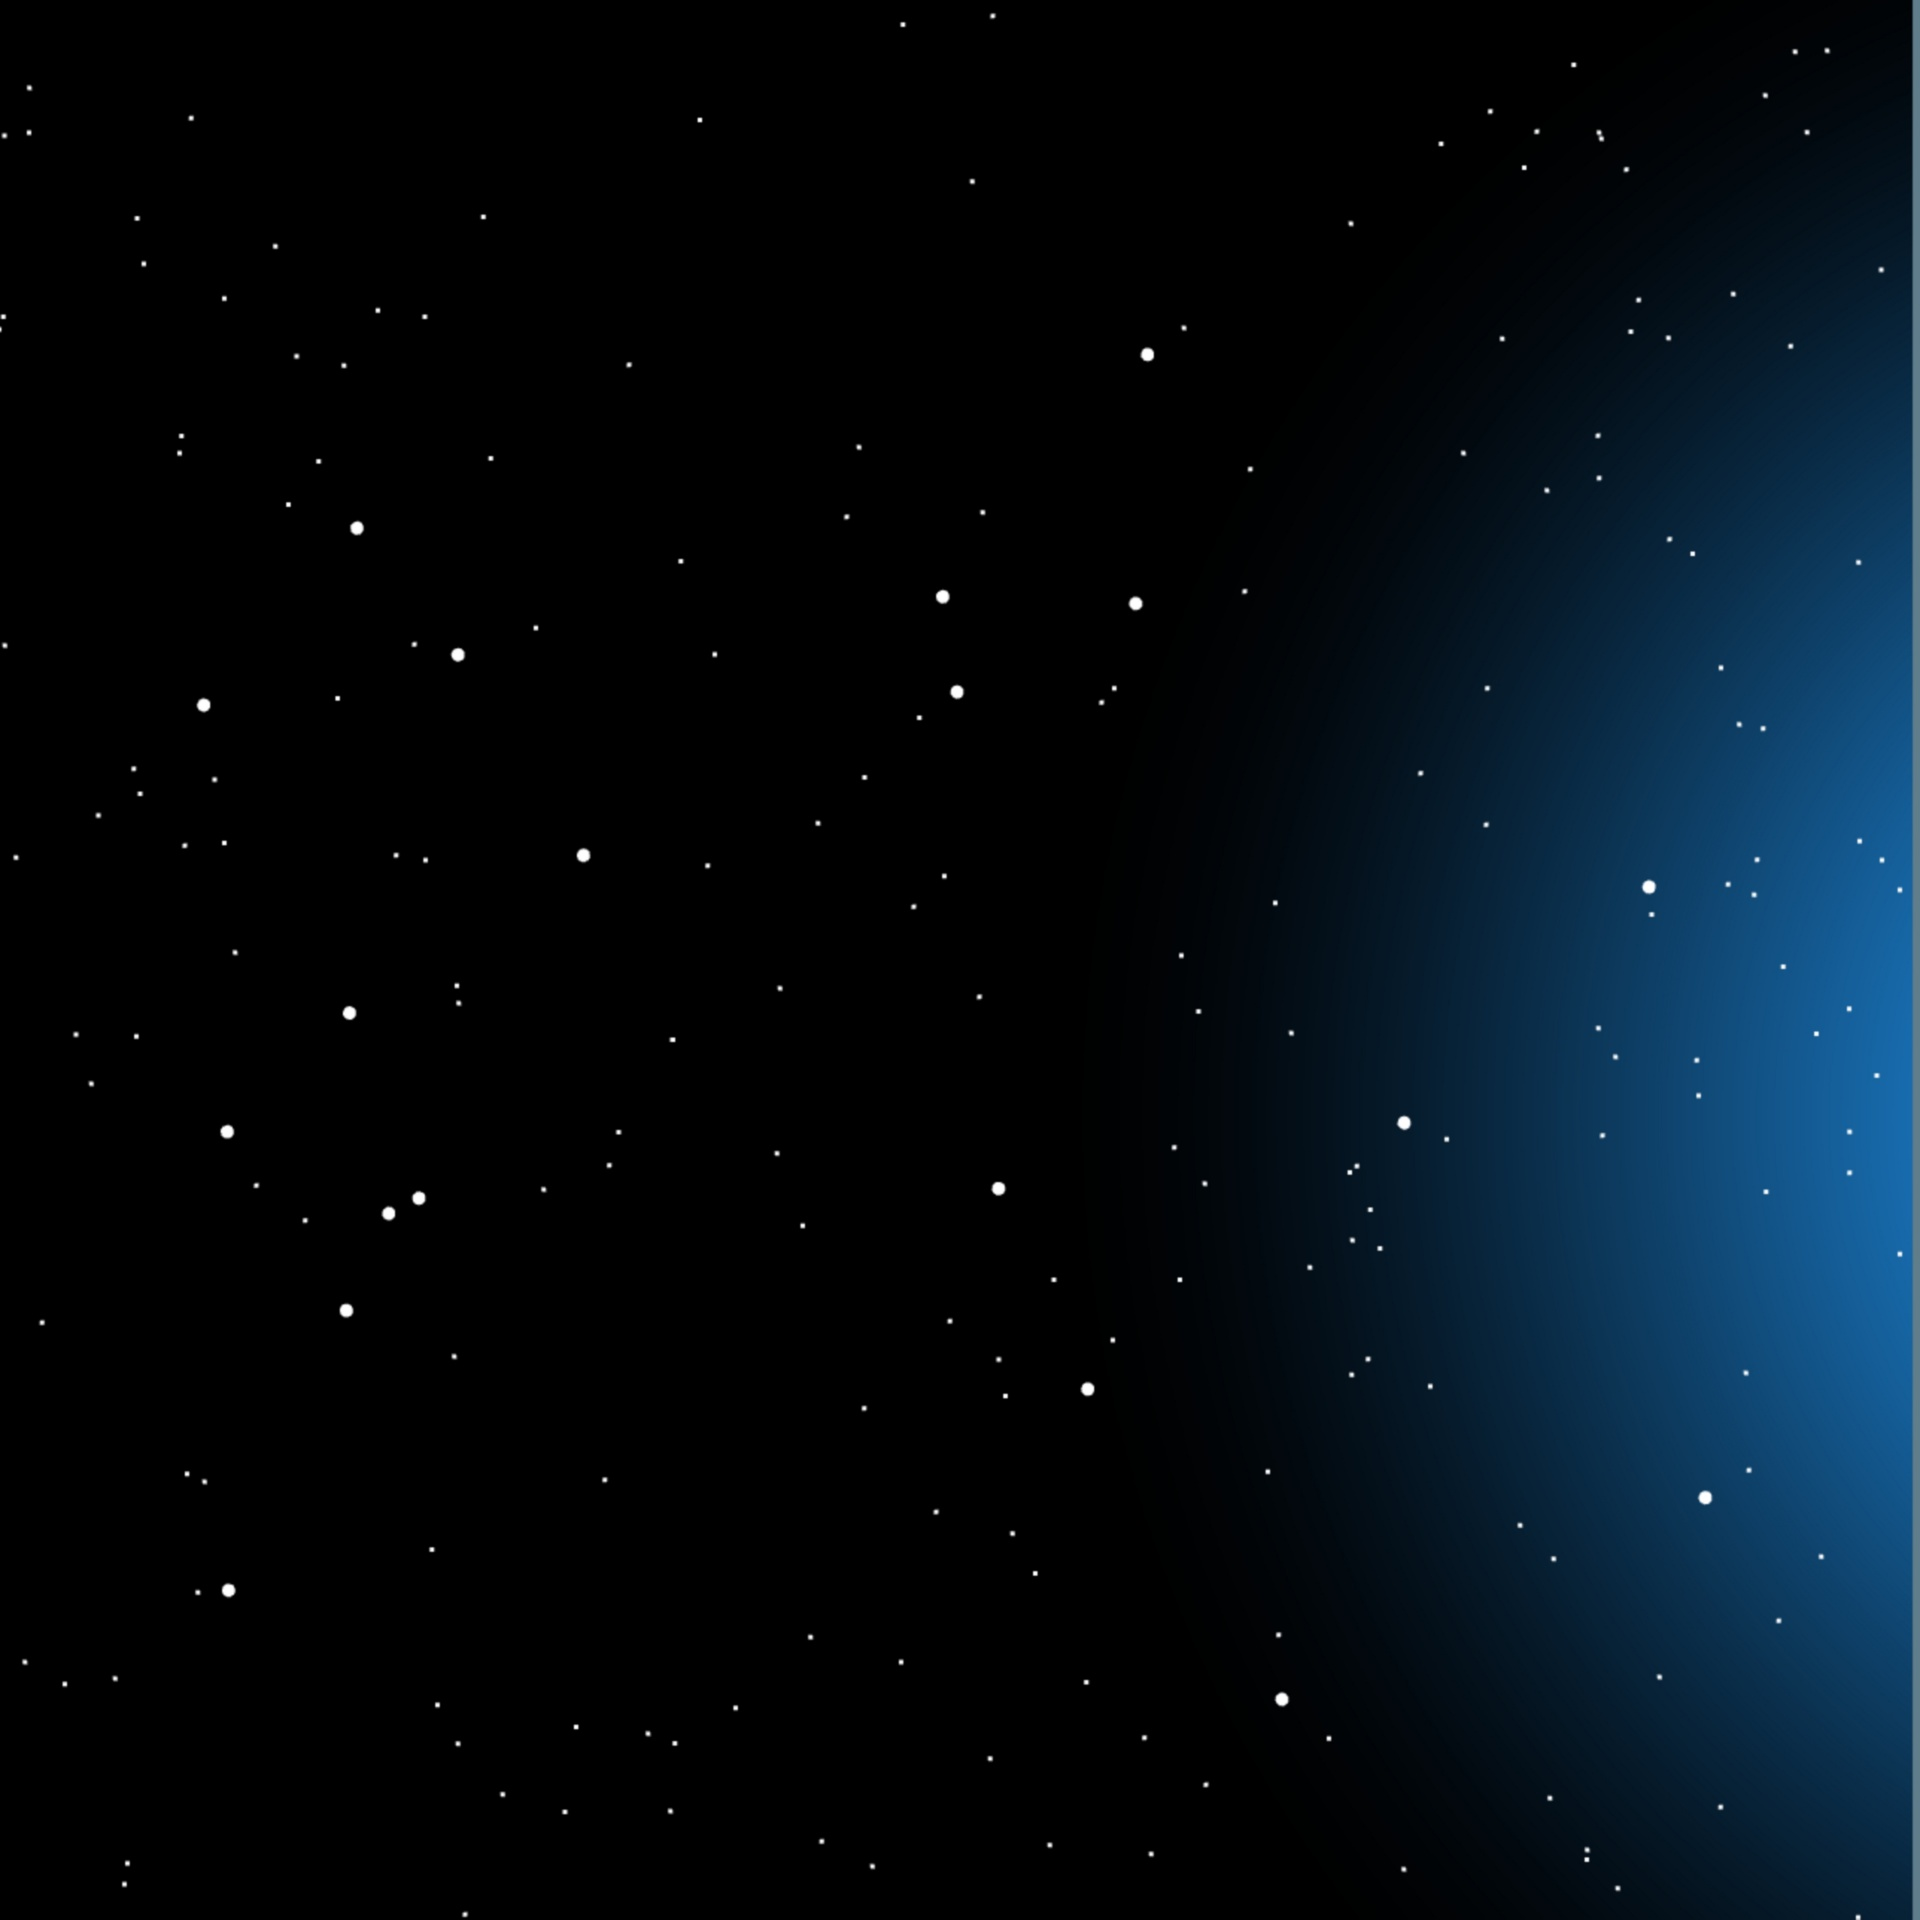 Night Sky Stars Background Psdgraphics - HD 1920×1920